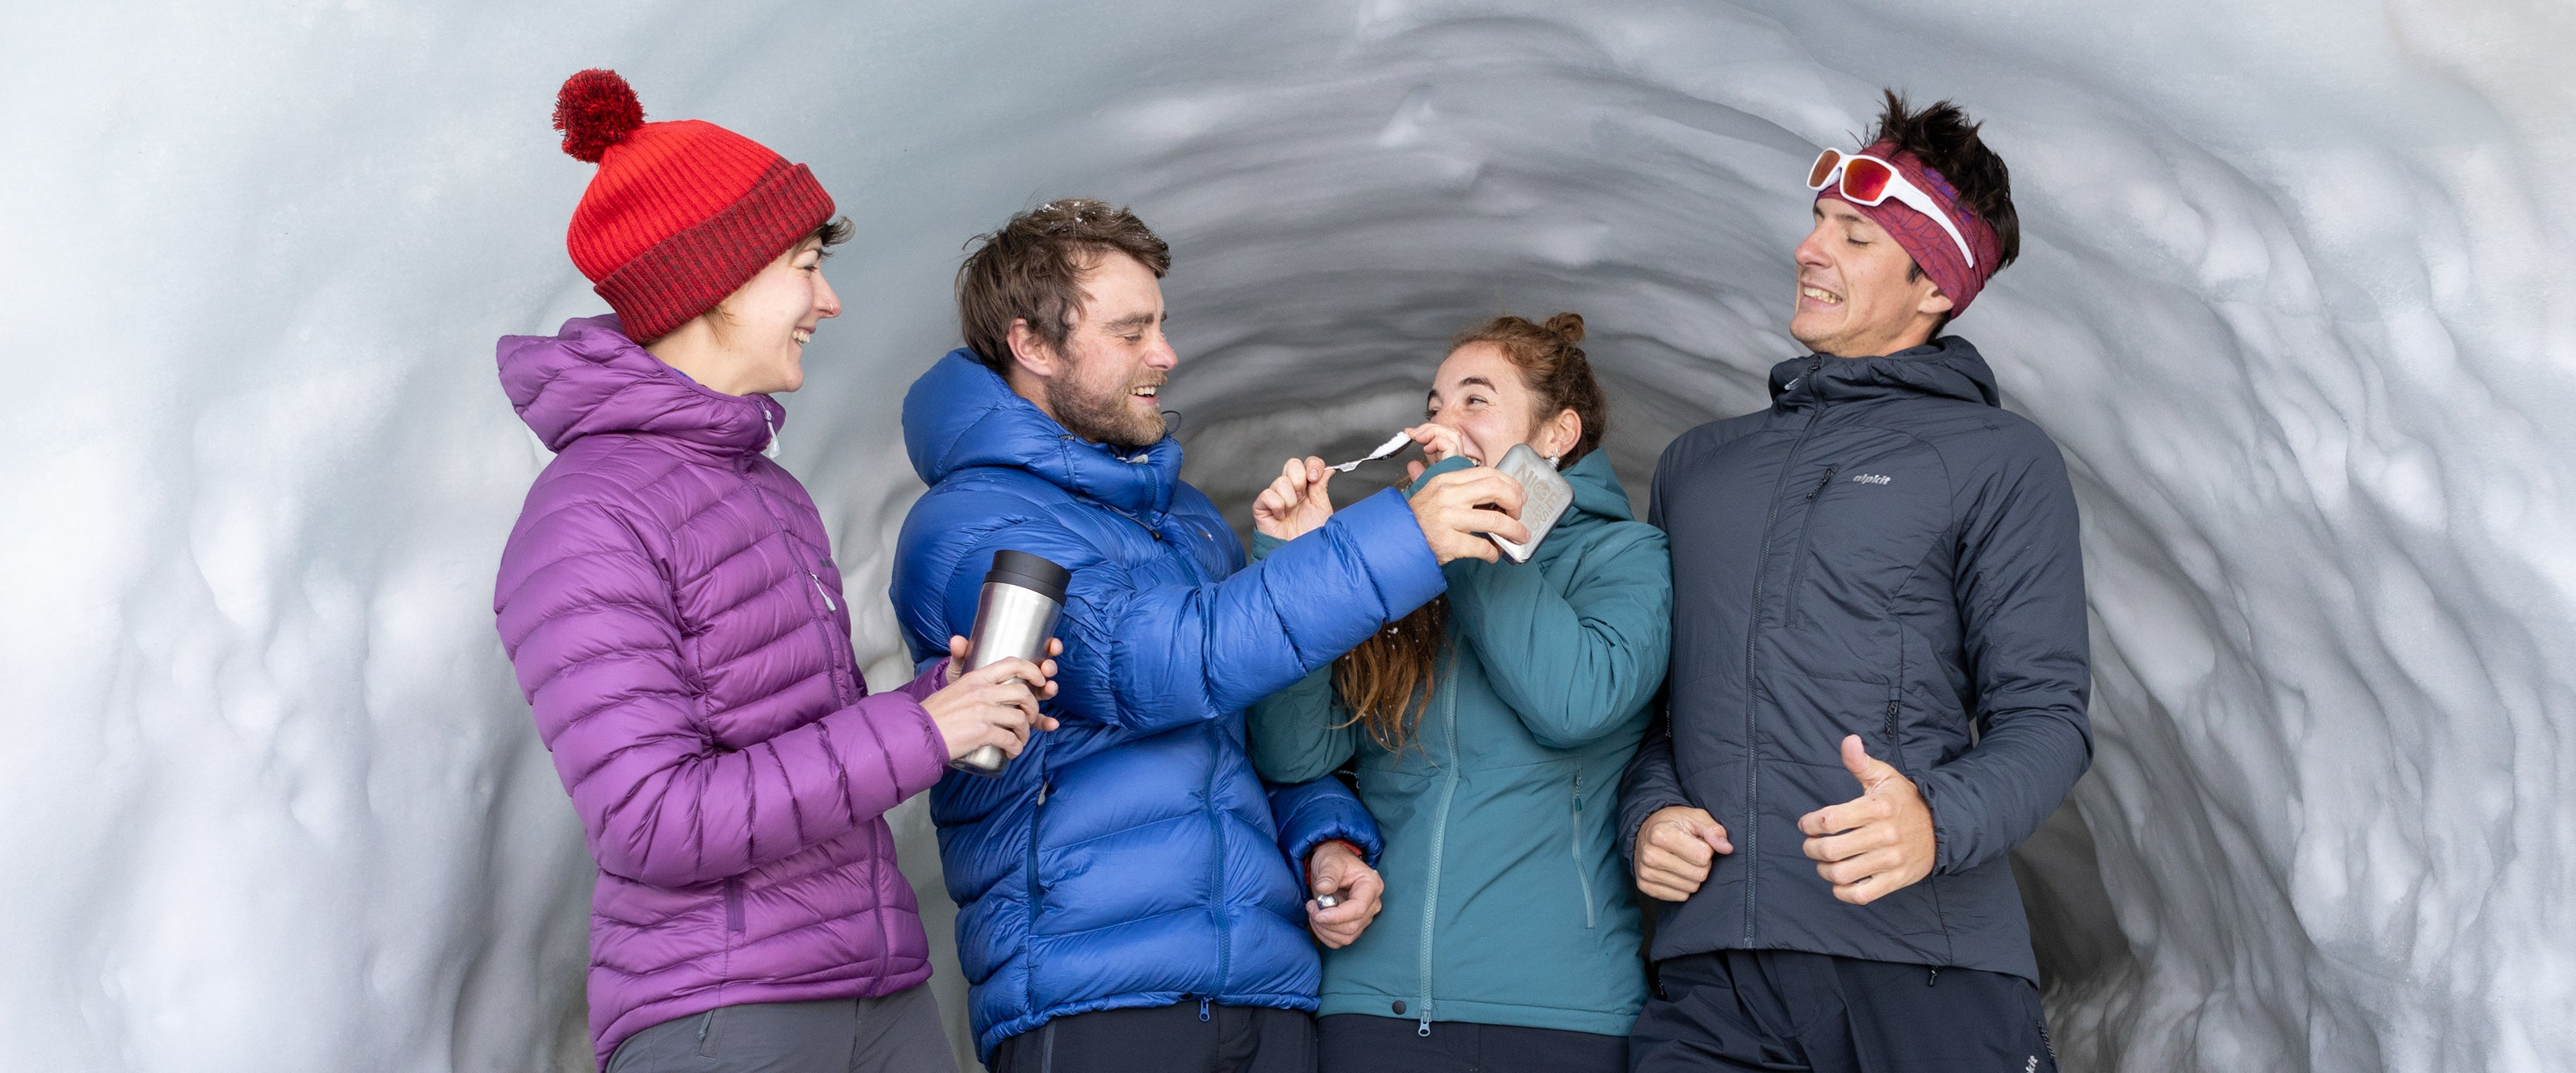 Four people wearing down jackets and Primaloft synthetic insulated jackets in an ice cave in Chamonix